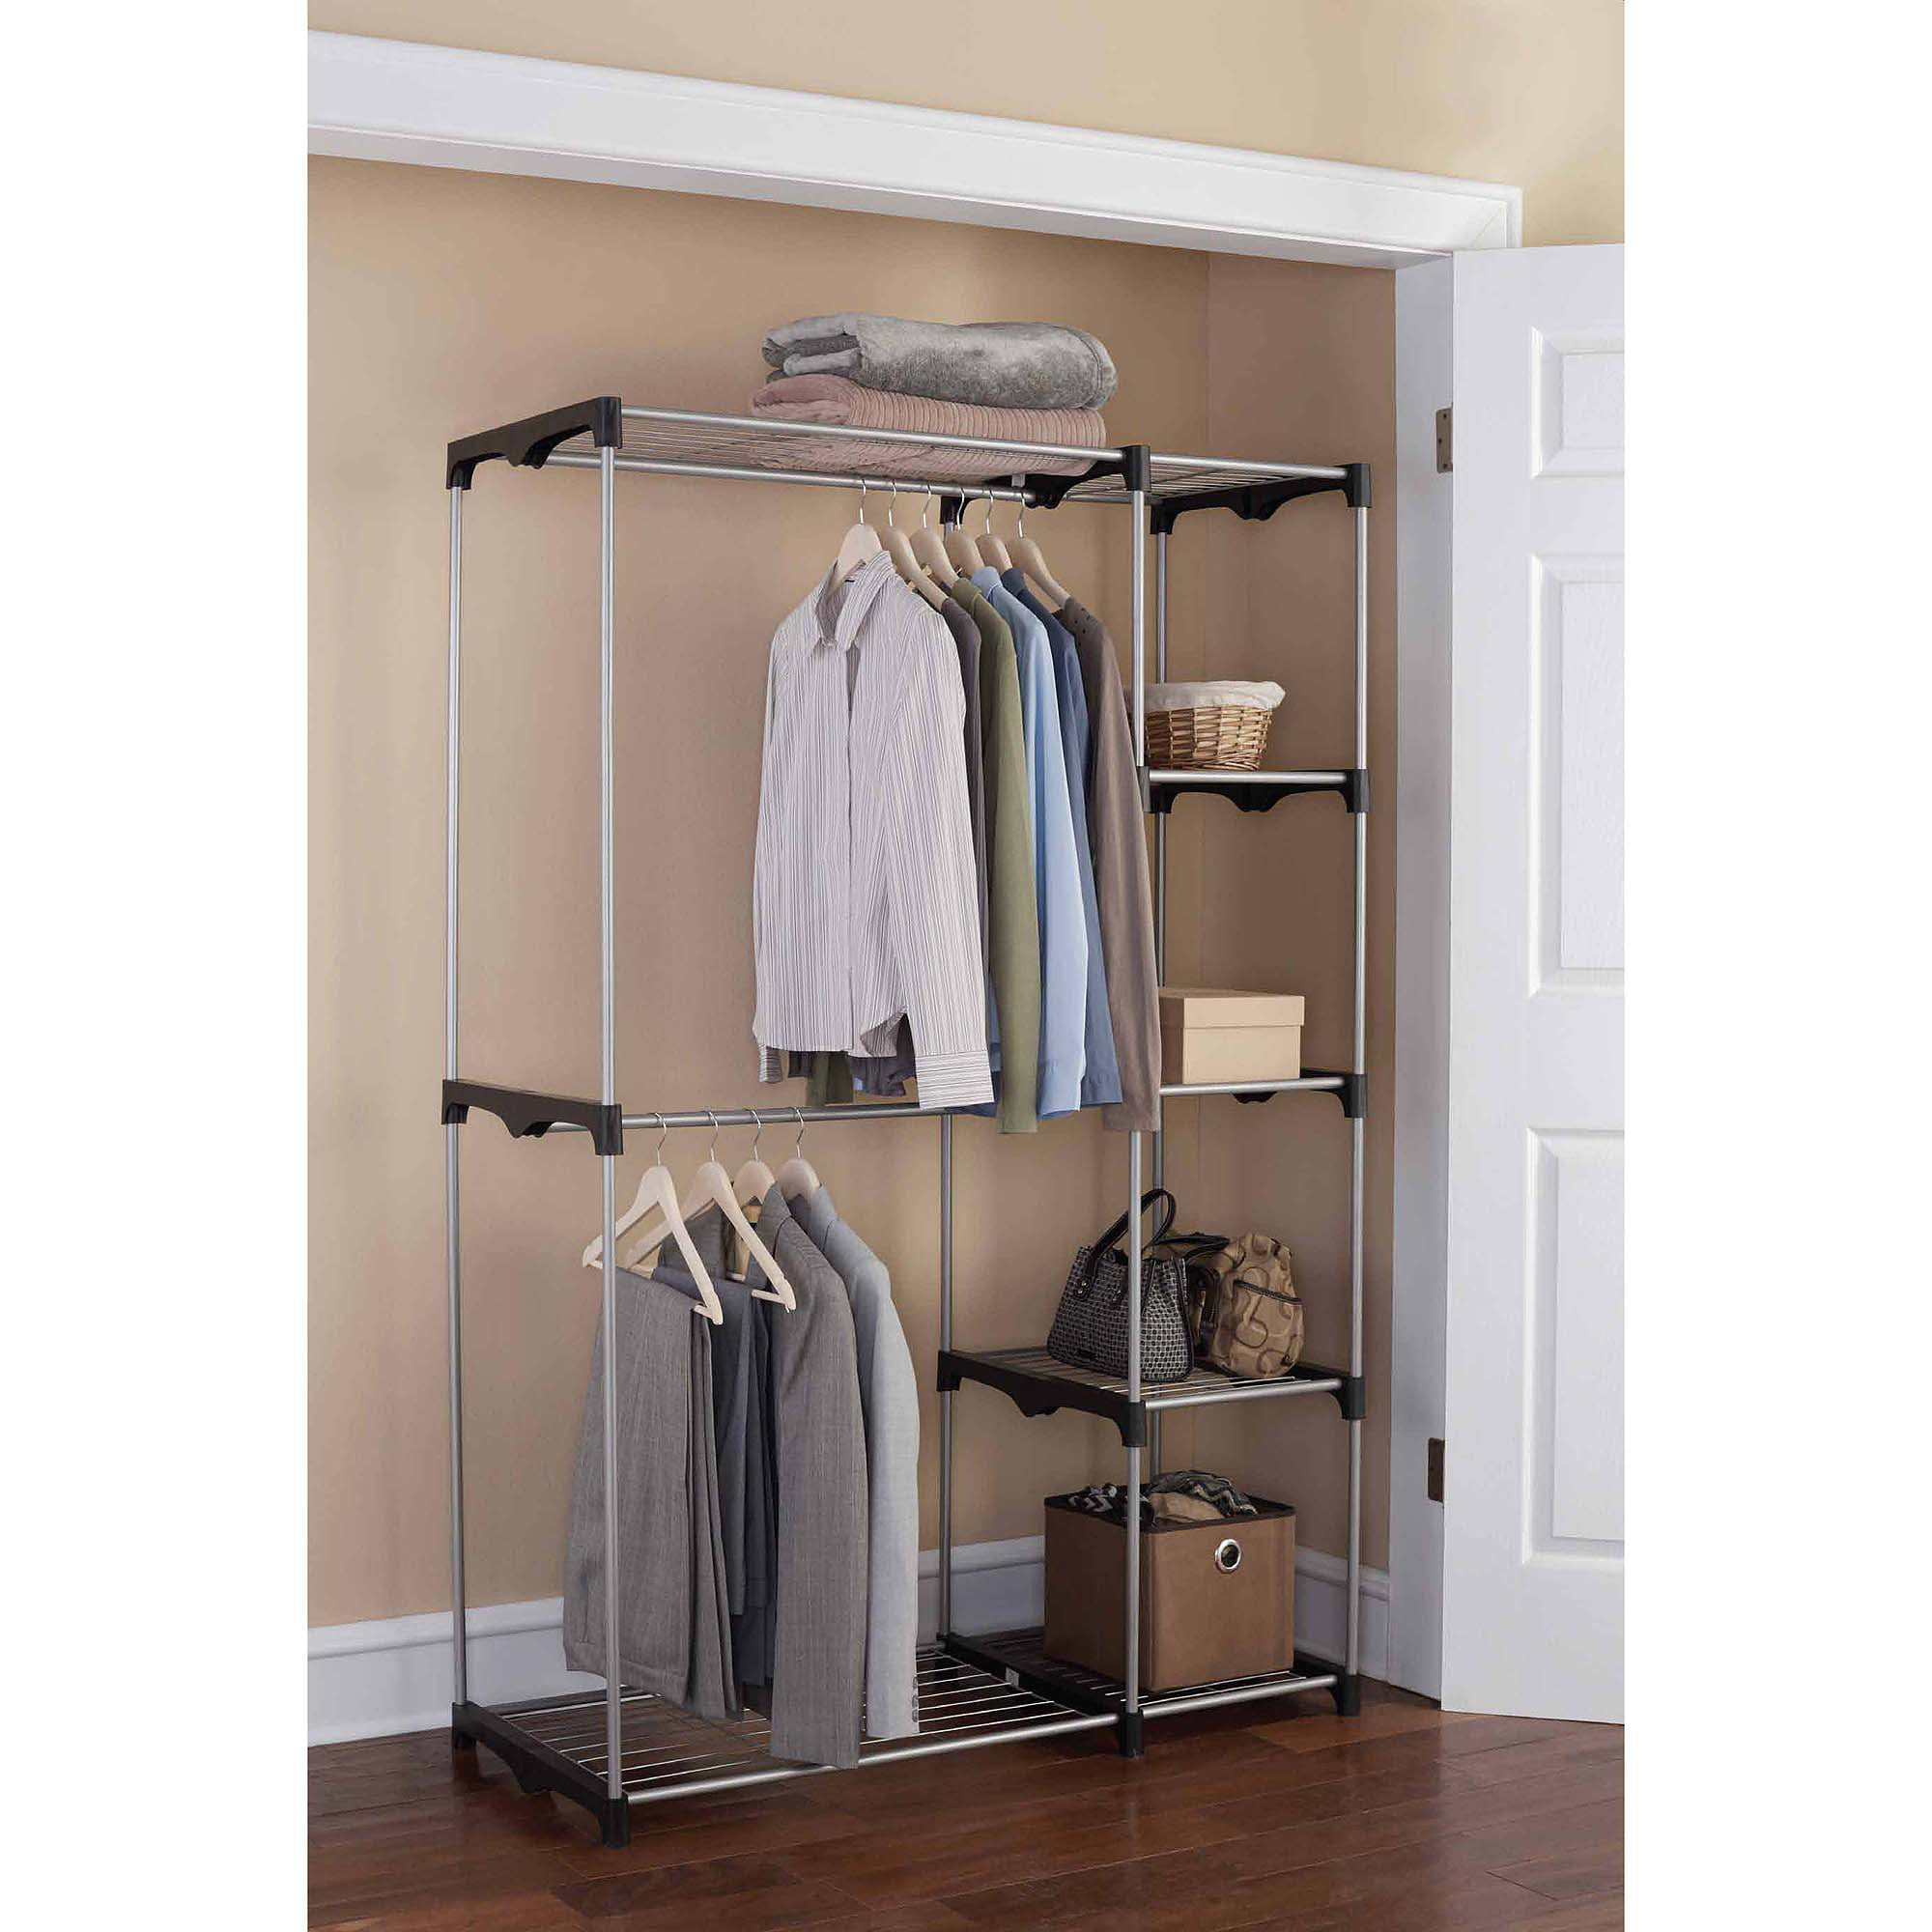 Closetmaid Closet Organizer Kit With Shoe Shelf, 5u0027 To 8u0027   Walmart.com